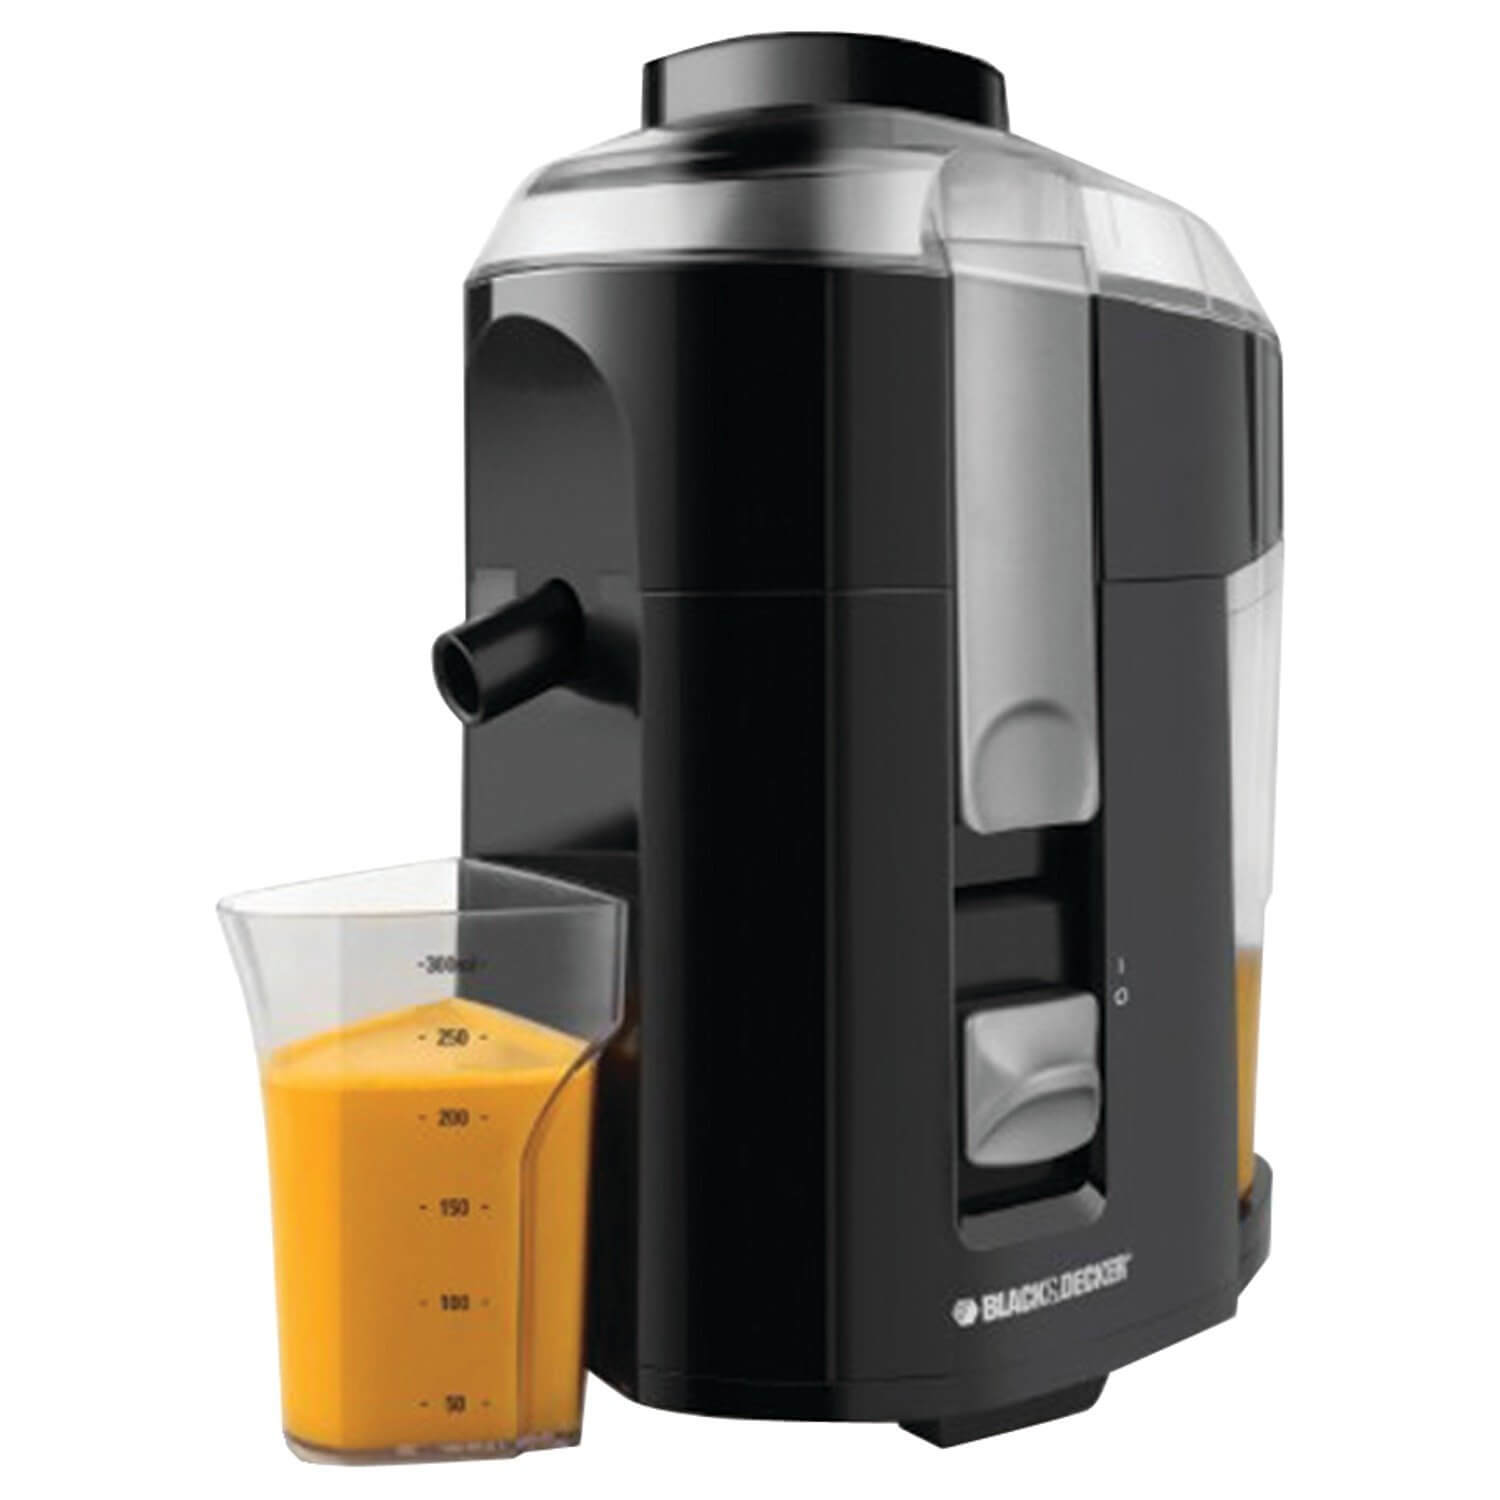 BLACK+DECKER Juicer JE2200B